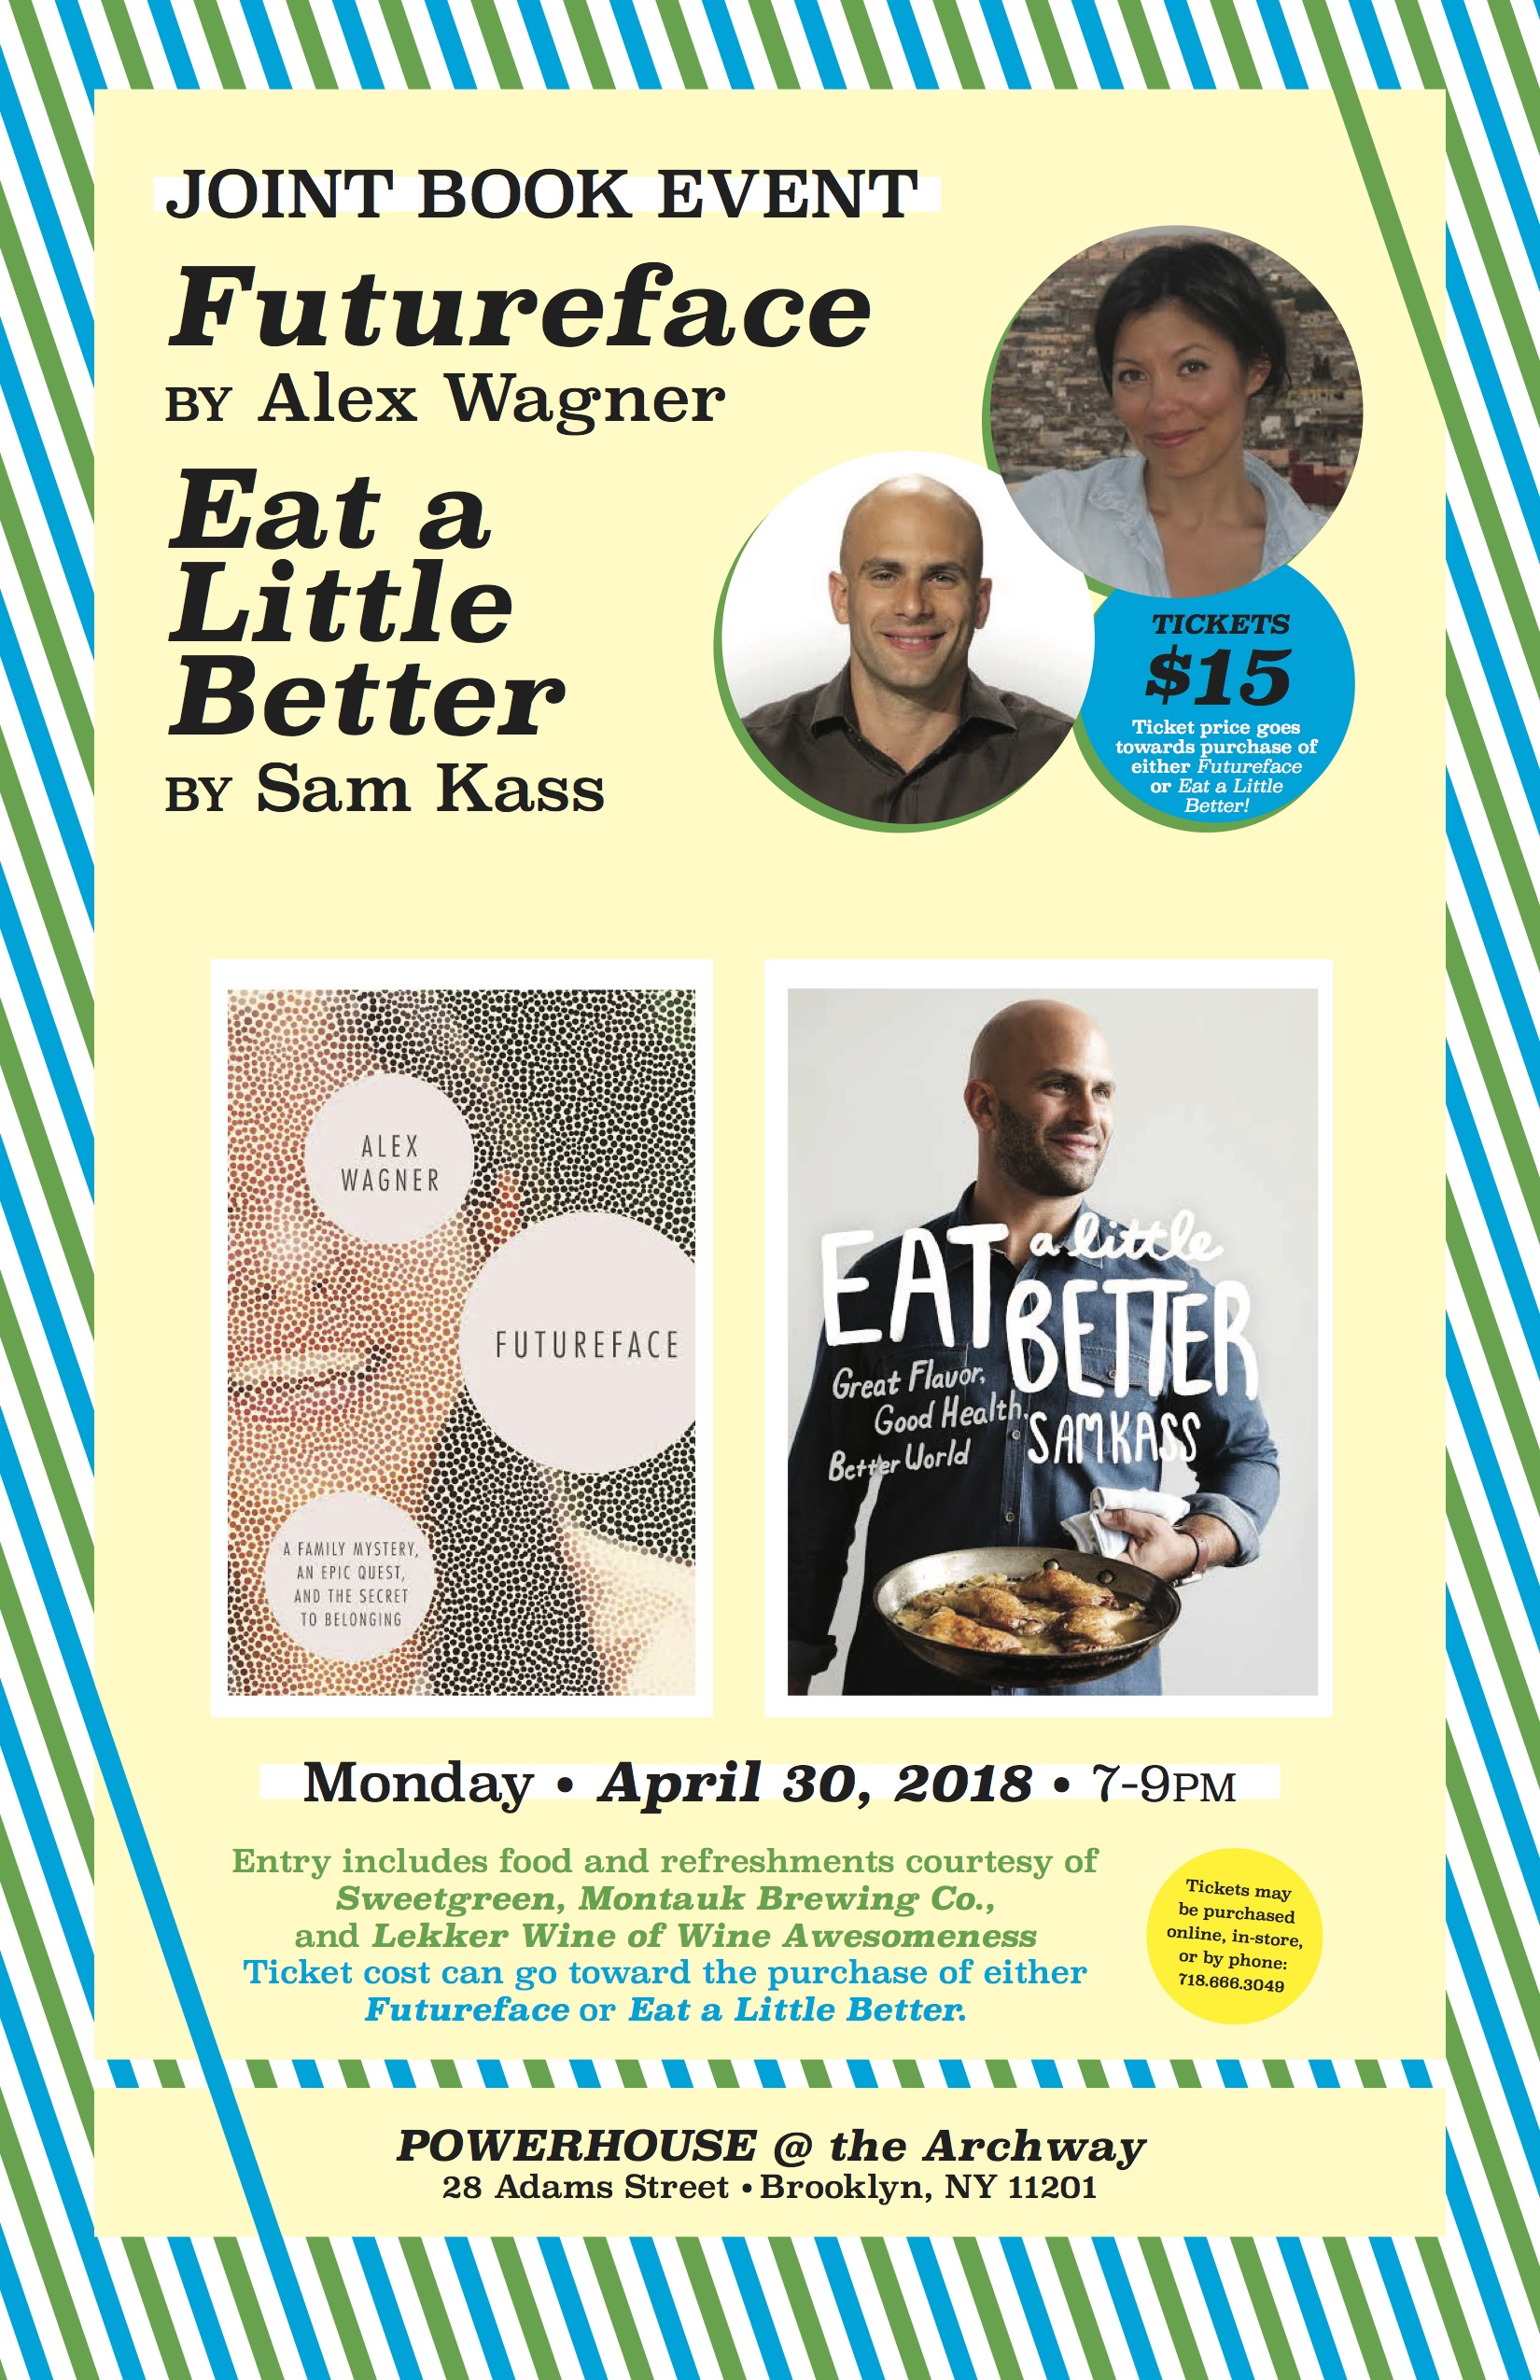 Joint Book Event: Futureface by Alex Wagner & Eat a Little Better by Sam Kass [Ticketed]